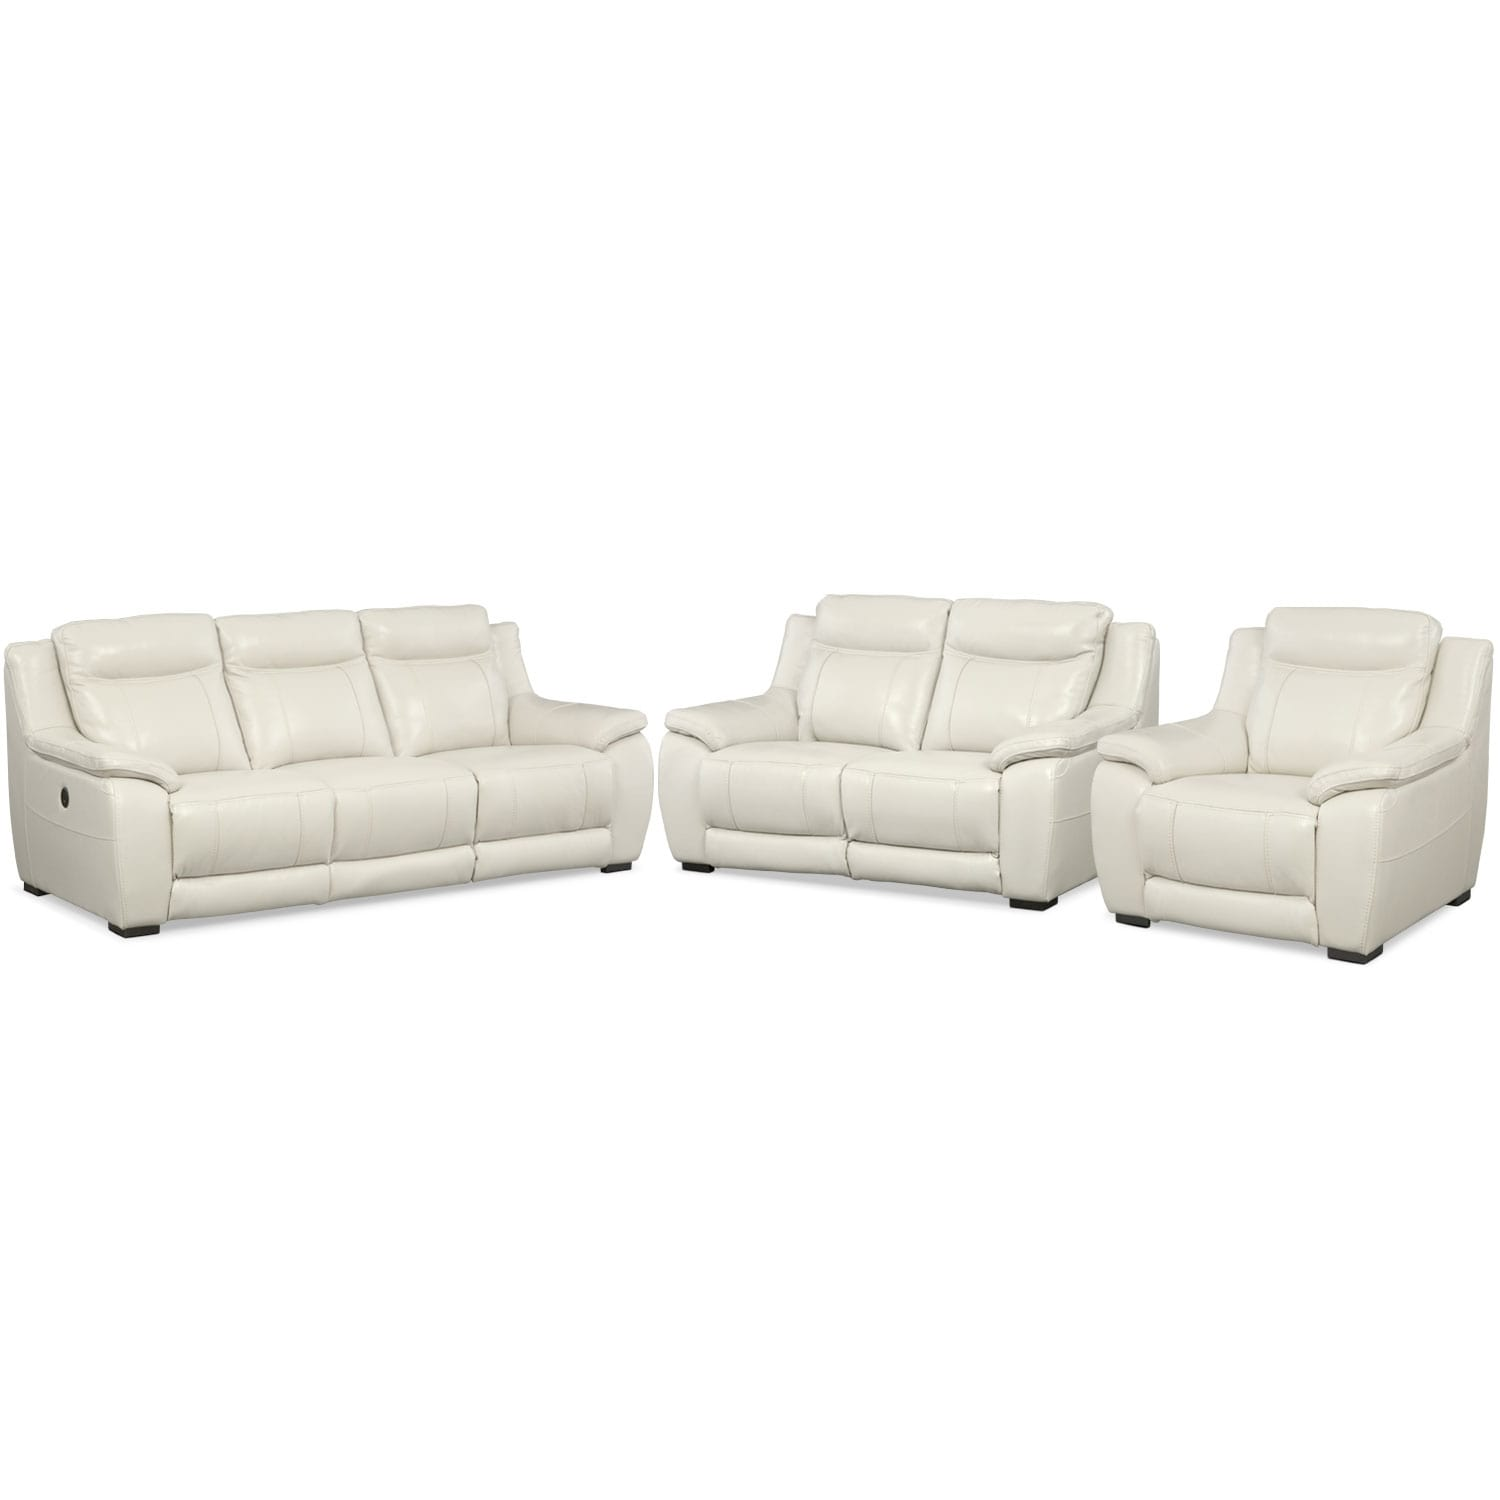 Lido Power Reclining Sofa, Reclining Loveseat And Recliner Set   Ivory